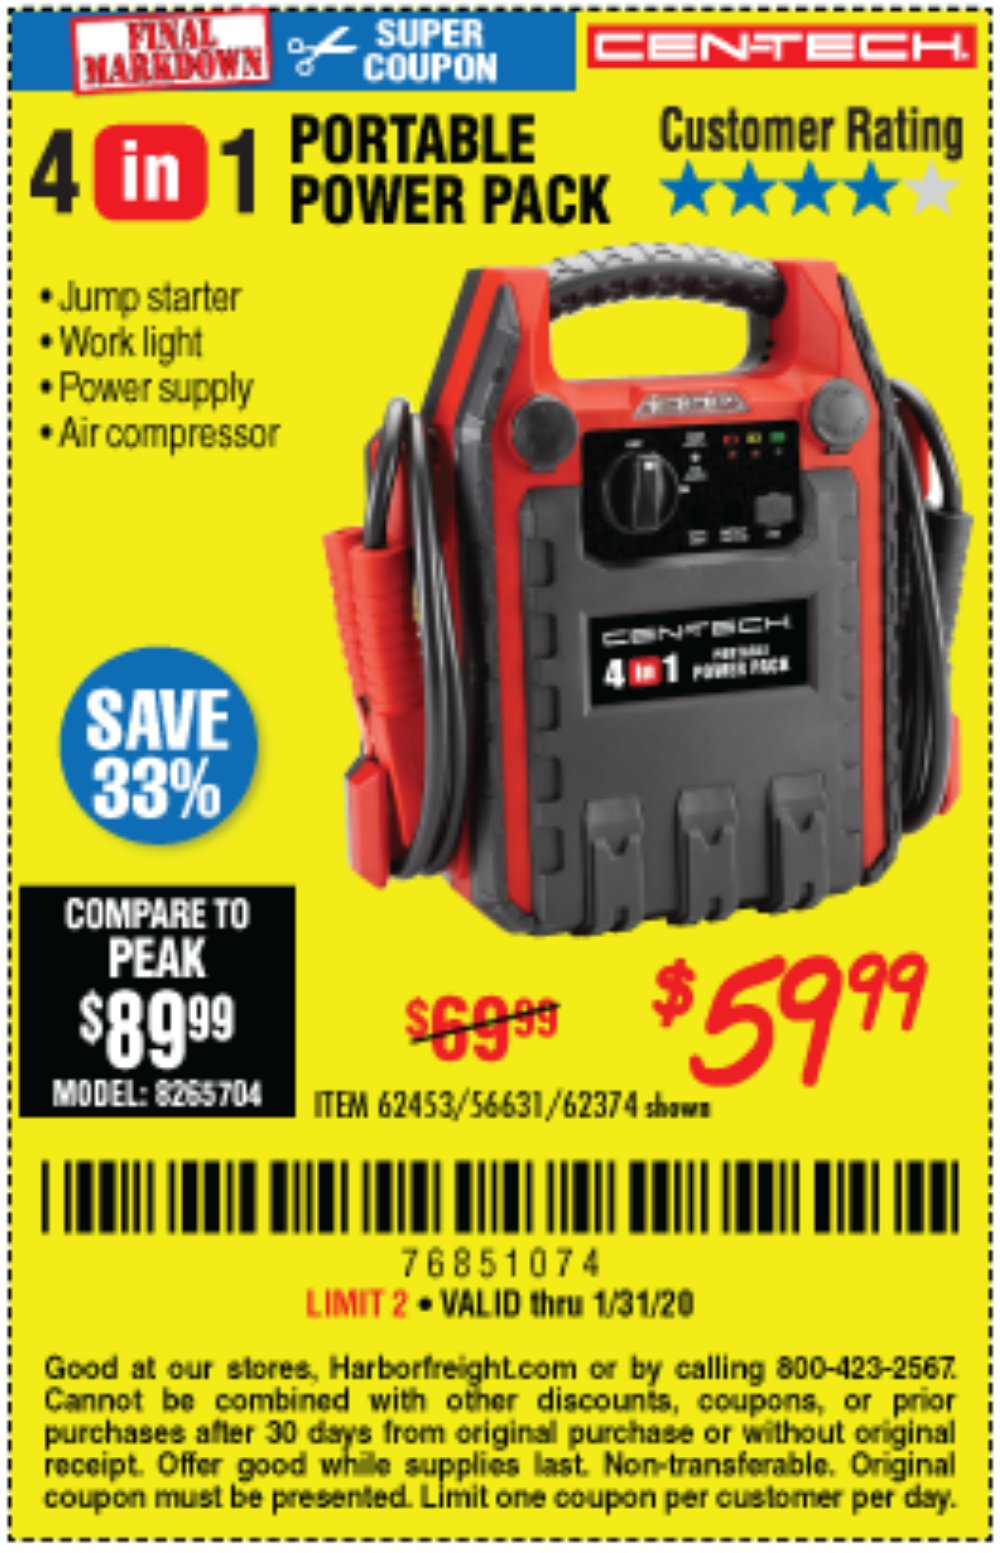 Harbor Freight Coupon, HF Coupons - 4 In 1 Portable Power Pack